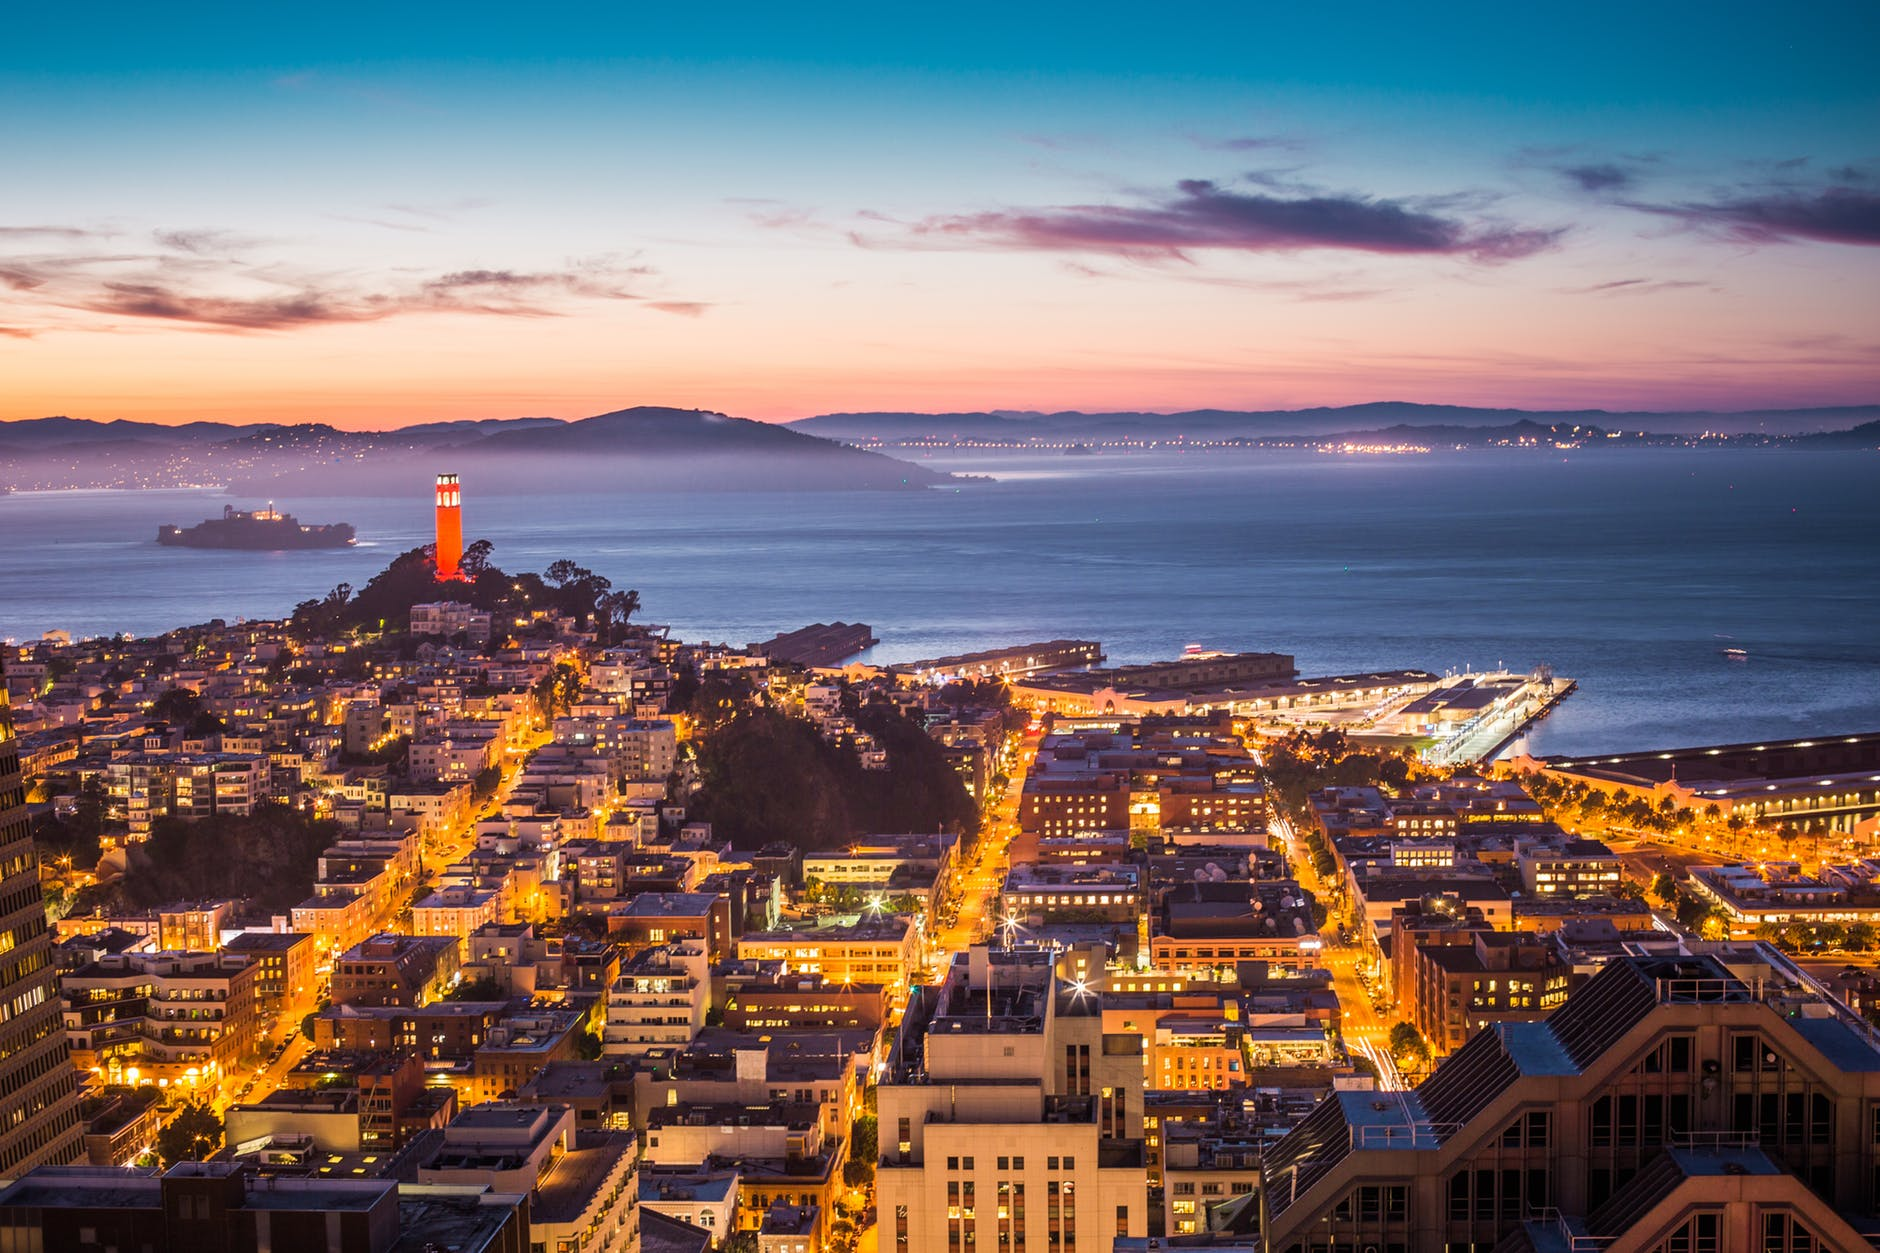 San Franciscon || Smart Cities in the USA